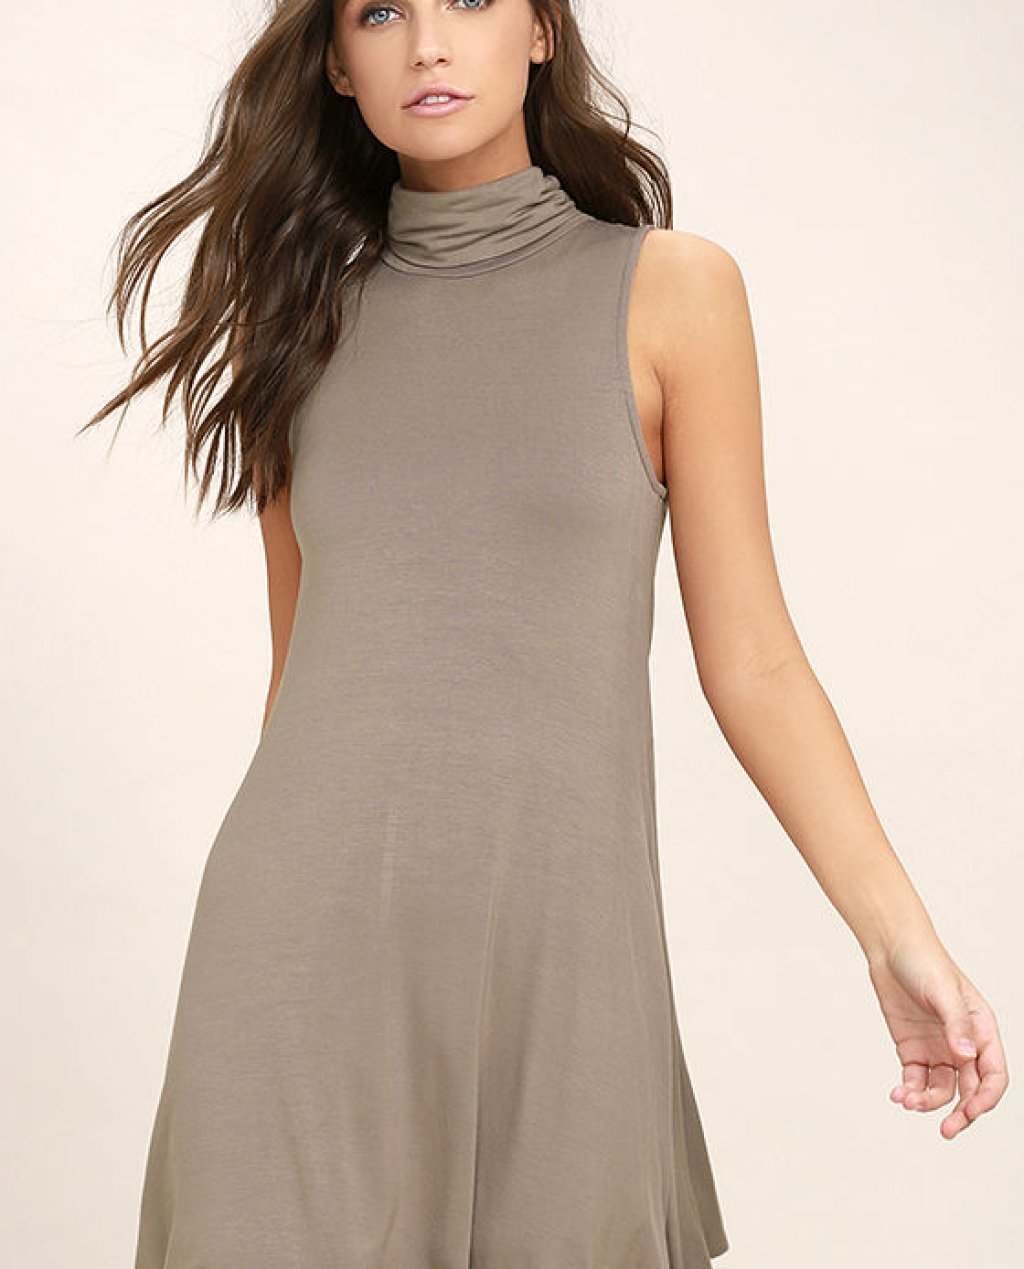 Carpe Diem Taupe Swing Dress